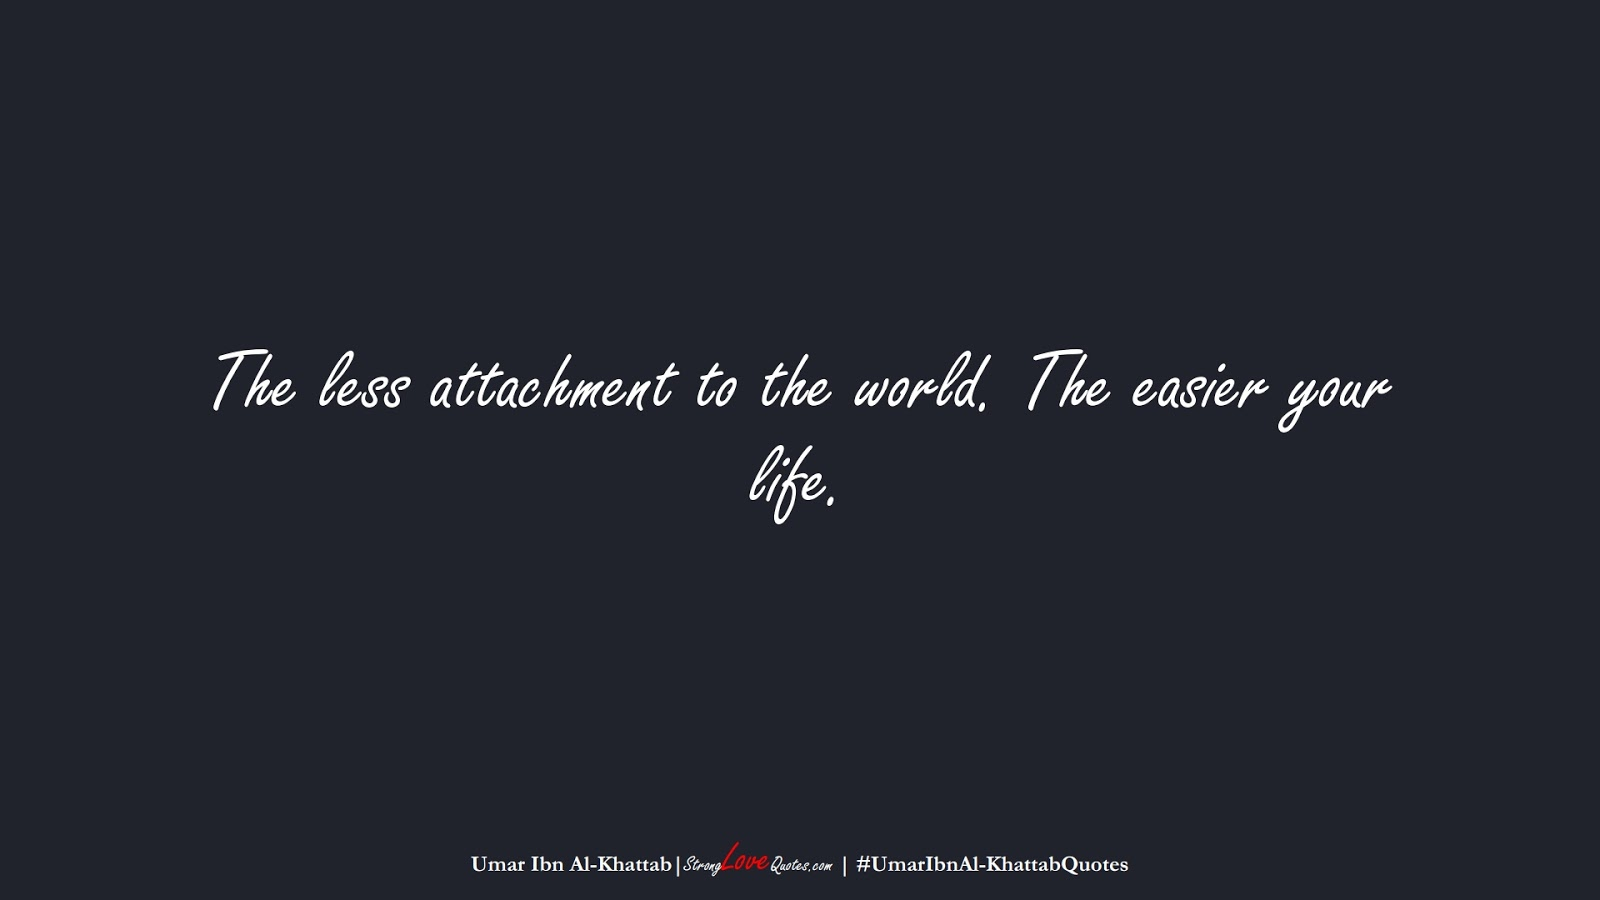 The less attachment to the world. The easier your life. (Umar Ibn Al-Khattab);  #UmarIbnAl-KhattabQuotes